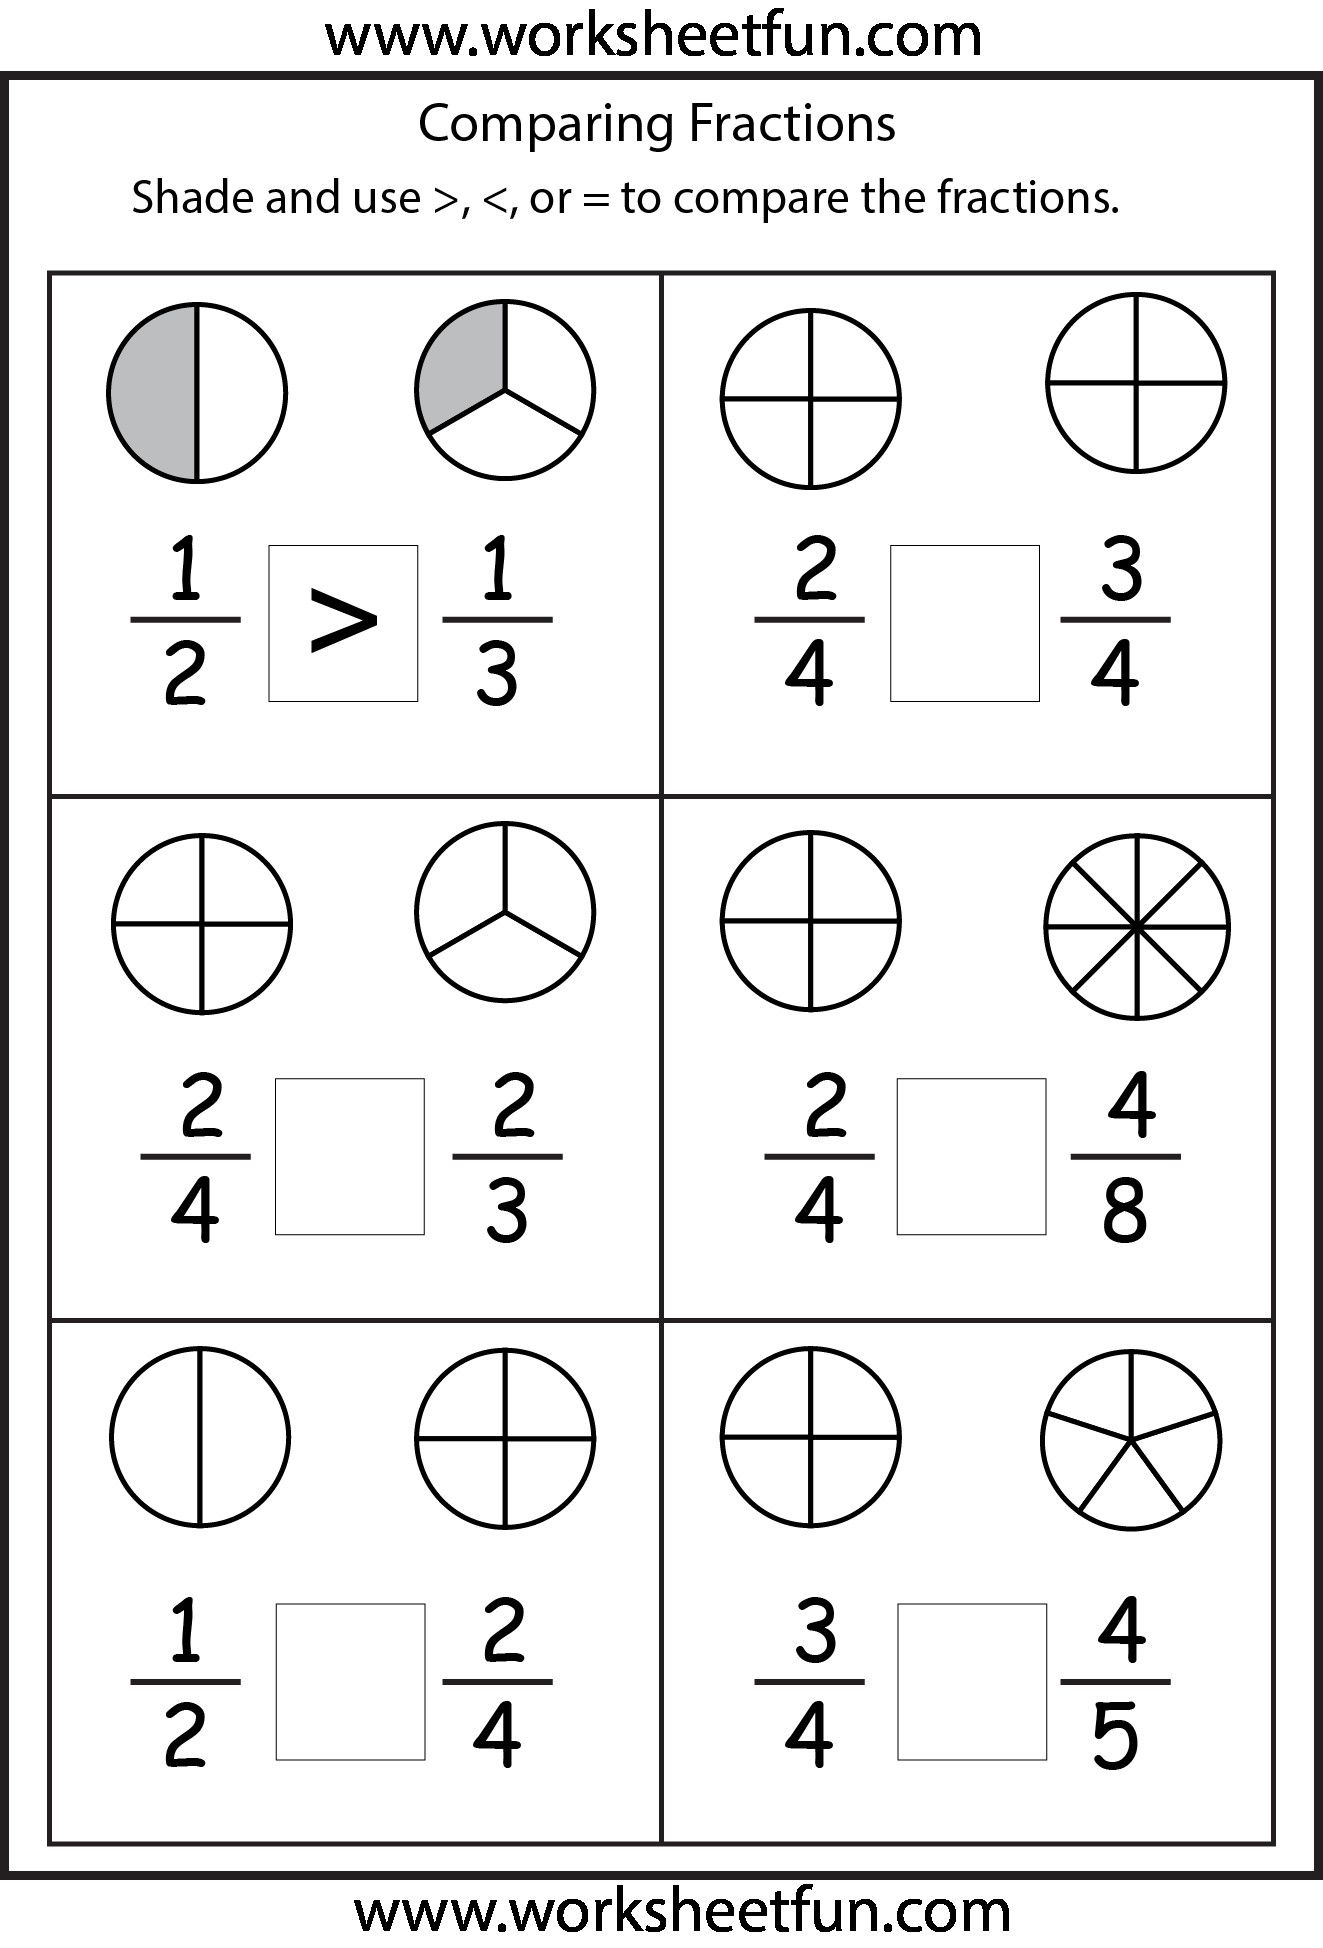 5 Adding Fractions With Like Denominators Worksheets 2 In 2020 2nd Grade Math Worksheets Math Fractions Worksheets Fractions Worksheets